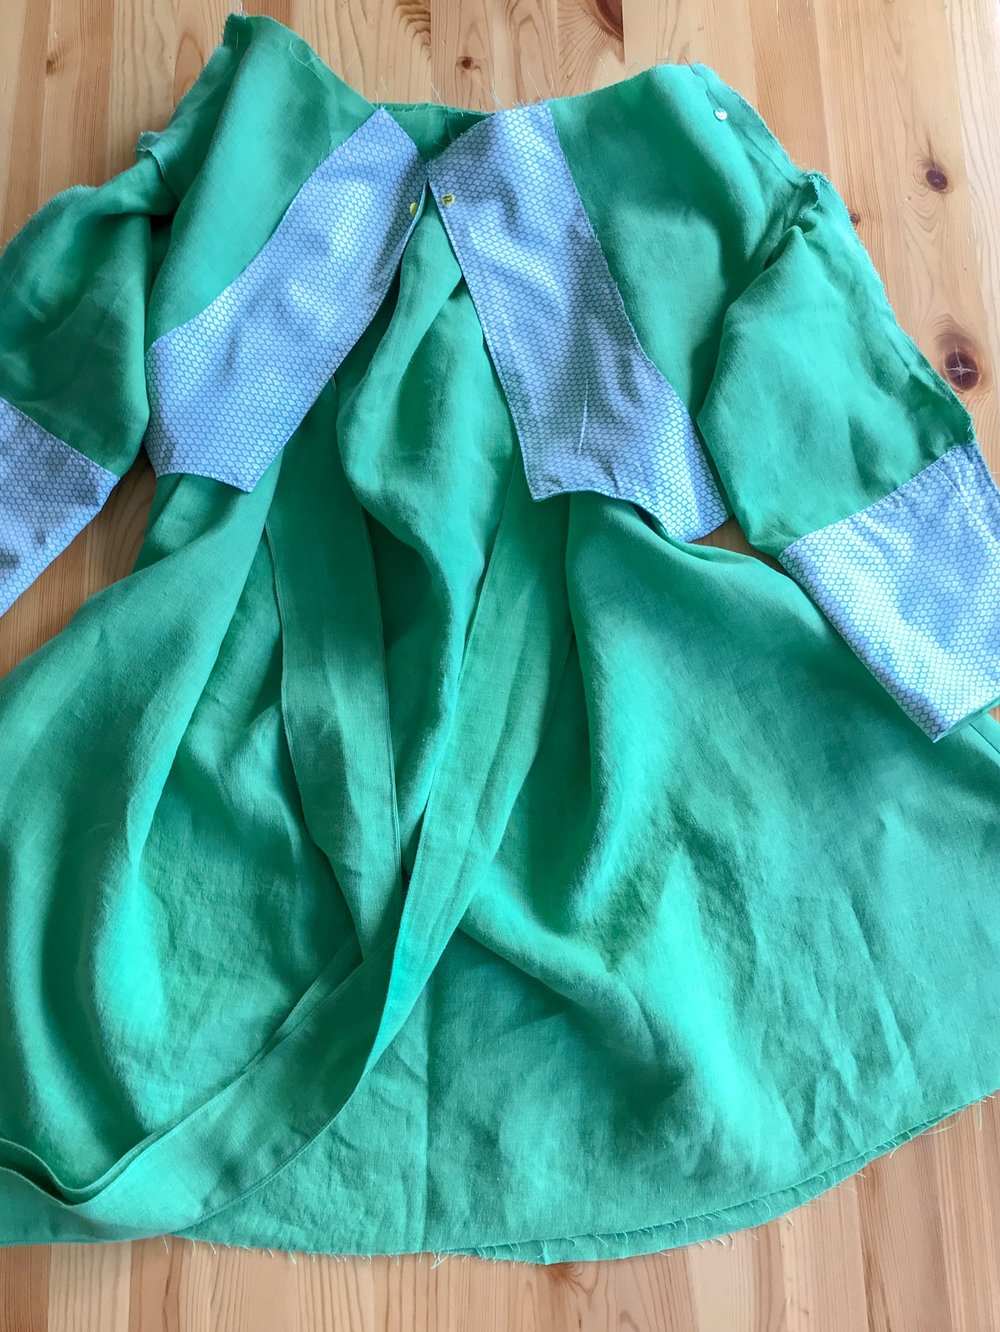 Bodice and skirt pinned together ready for assembly on a Schoolhouse Tunic